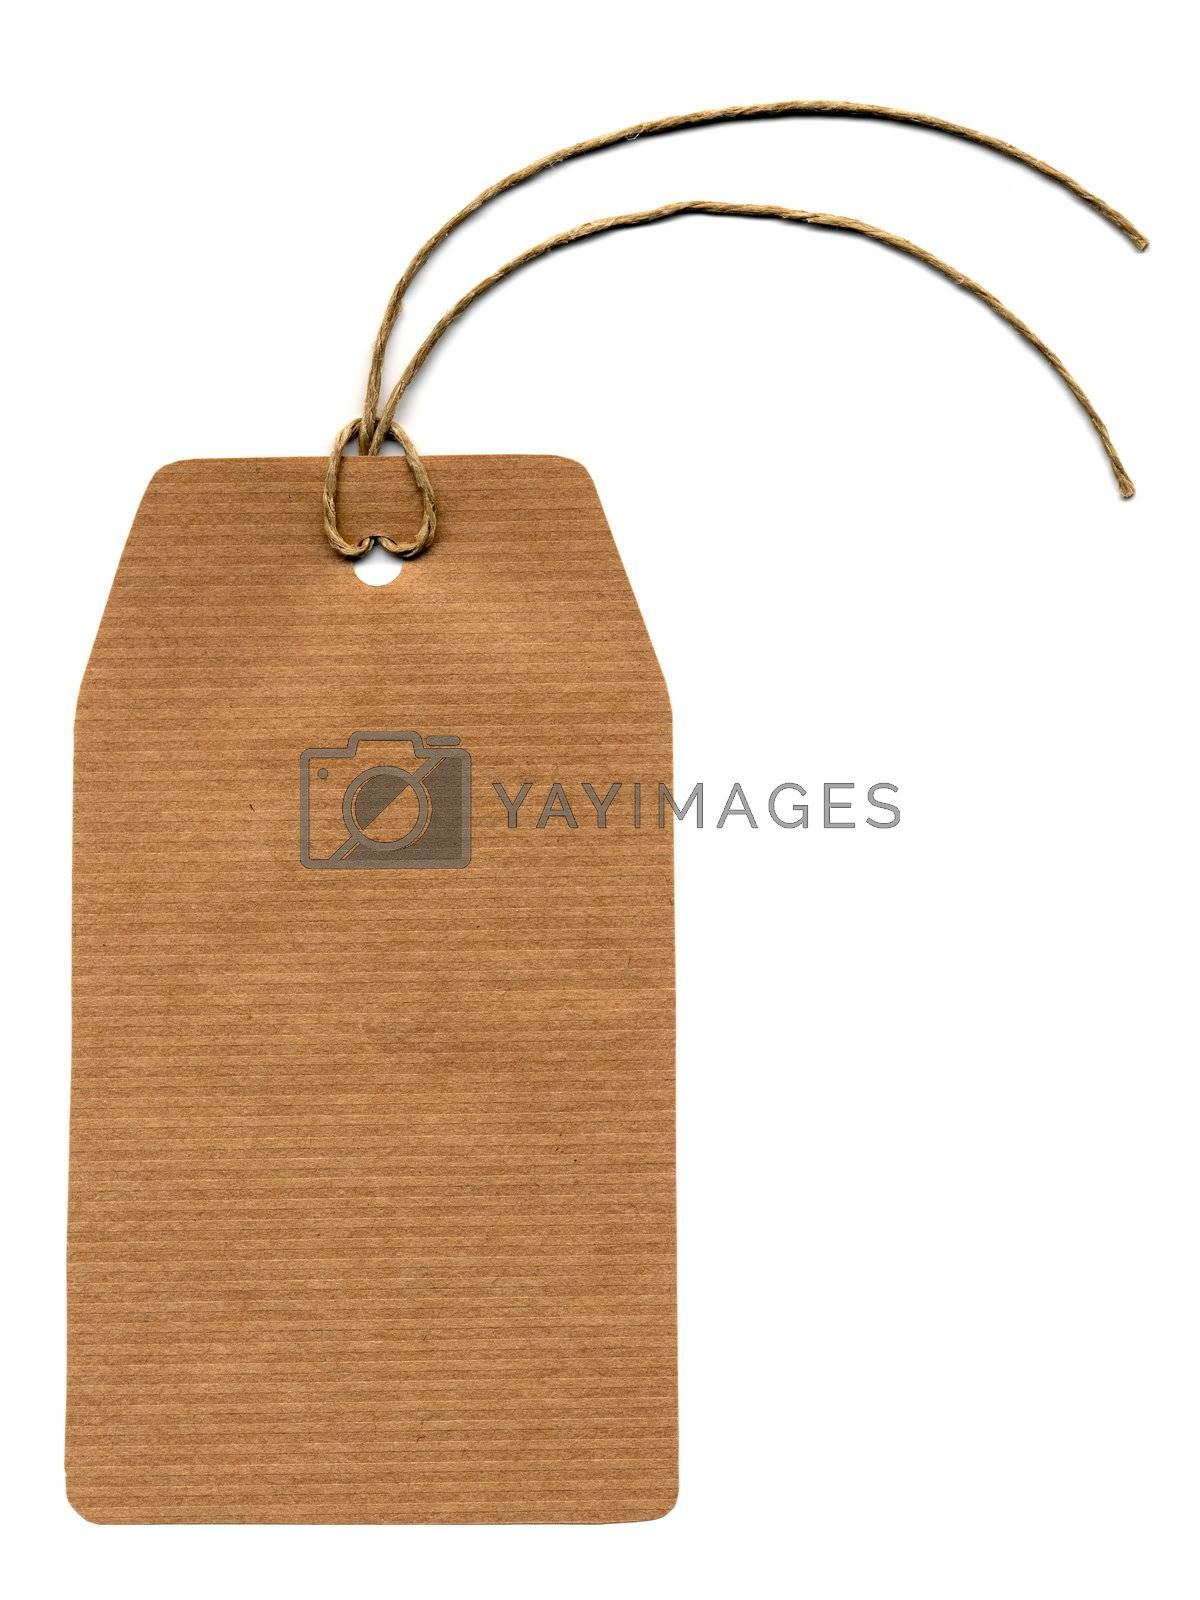 Royalty free image of Tag label by claudiodivizia